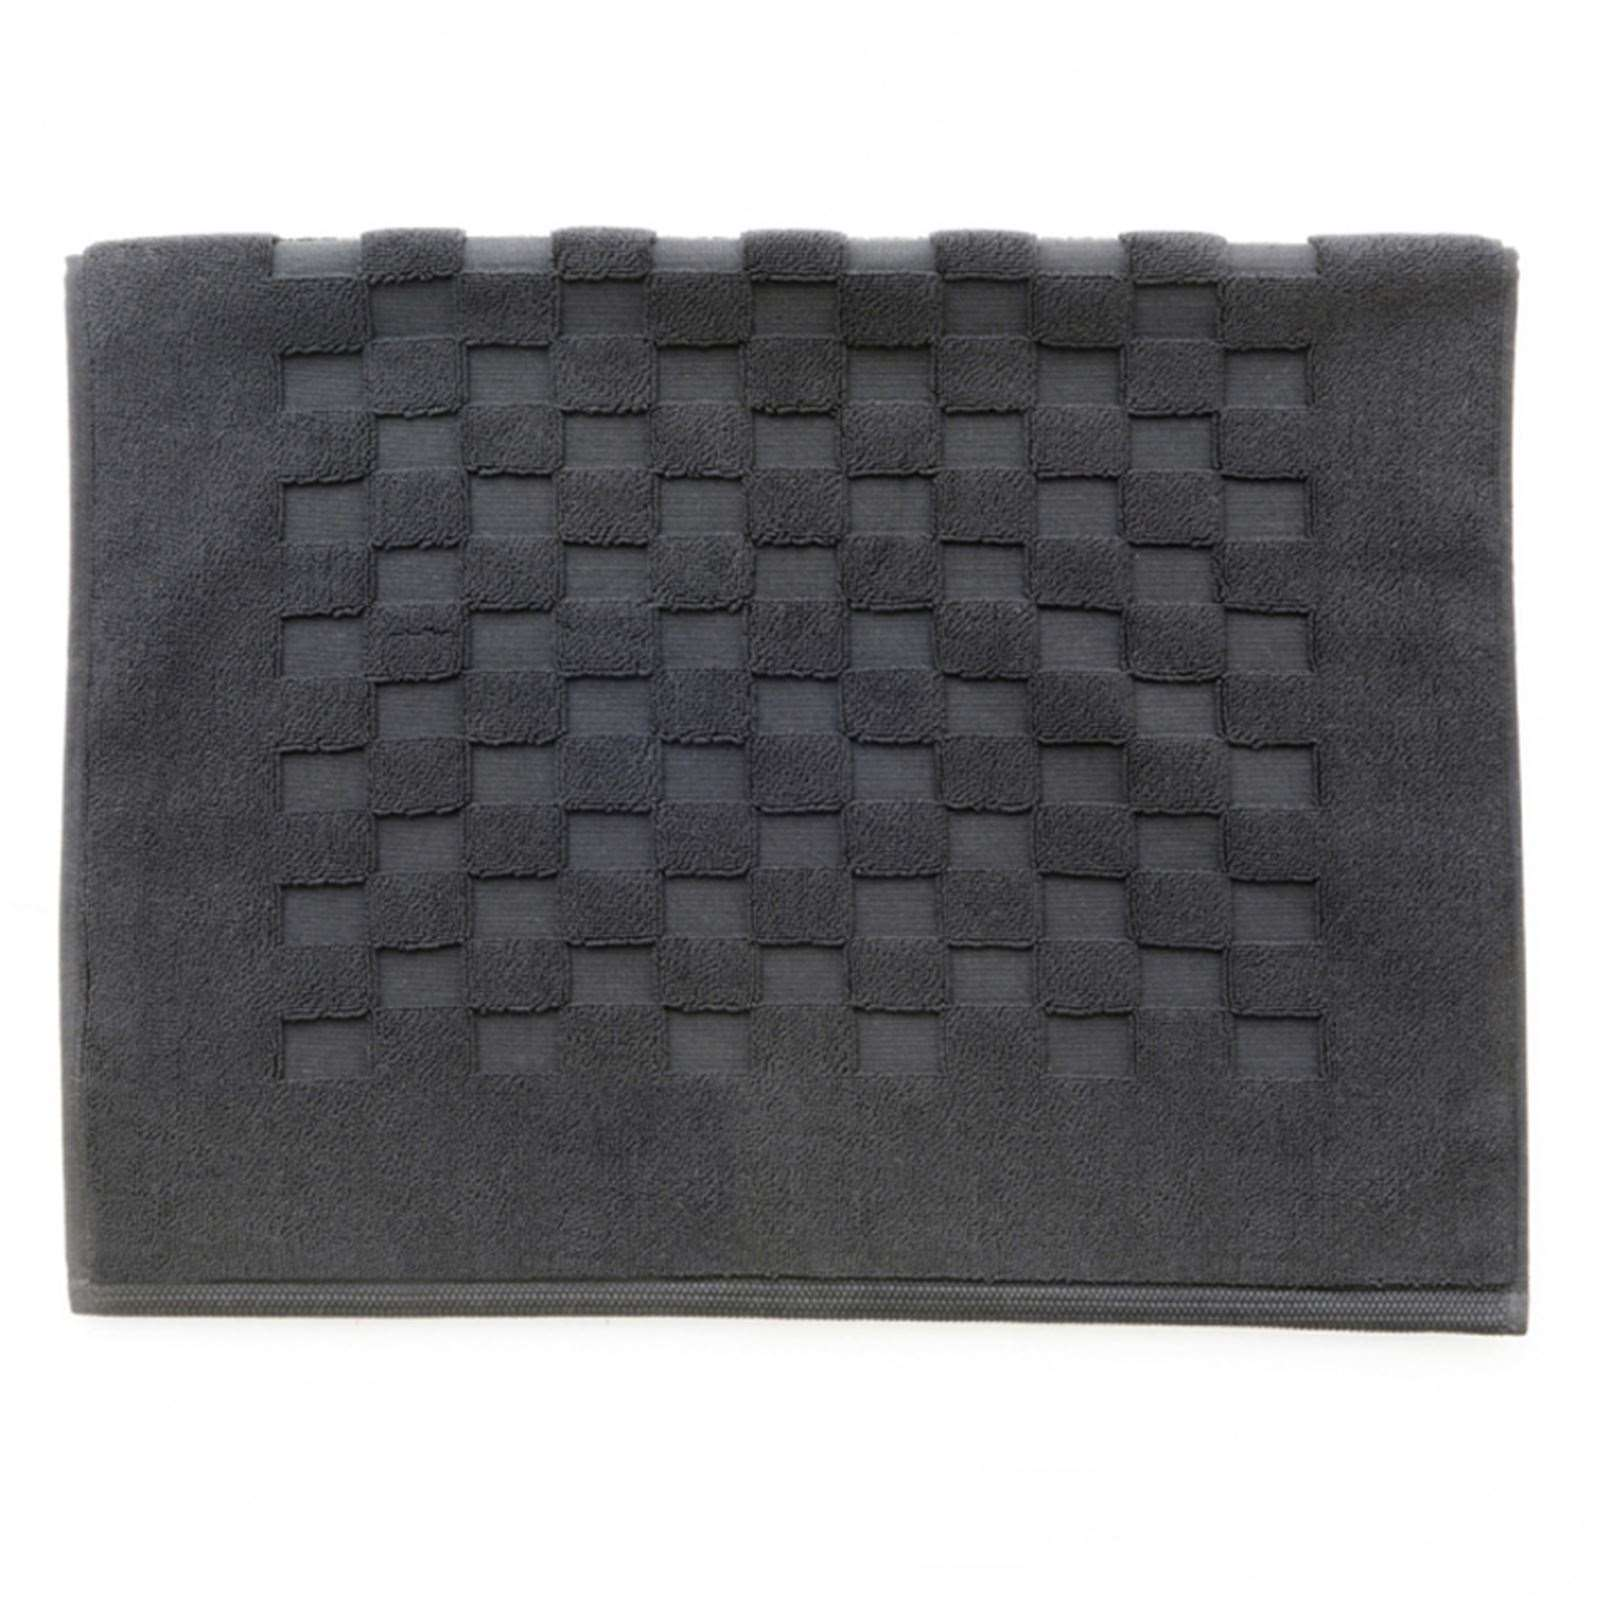 alexandre turpault essentiel tapis de salle de bain noir brandalley. Black Bedroom Furniture Sets. Home Design Ideas